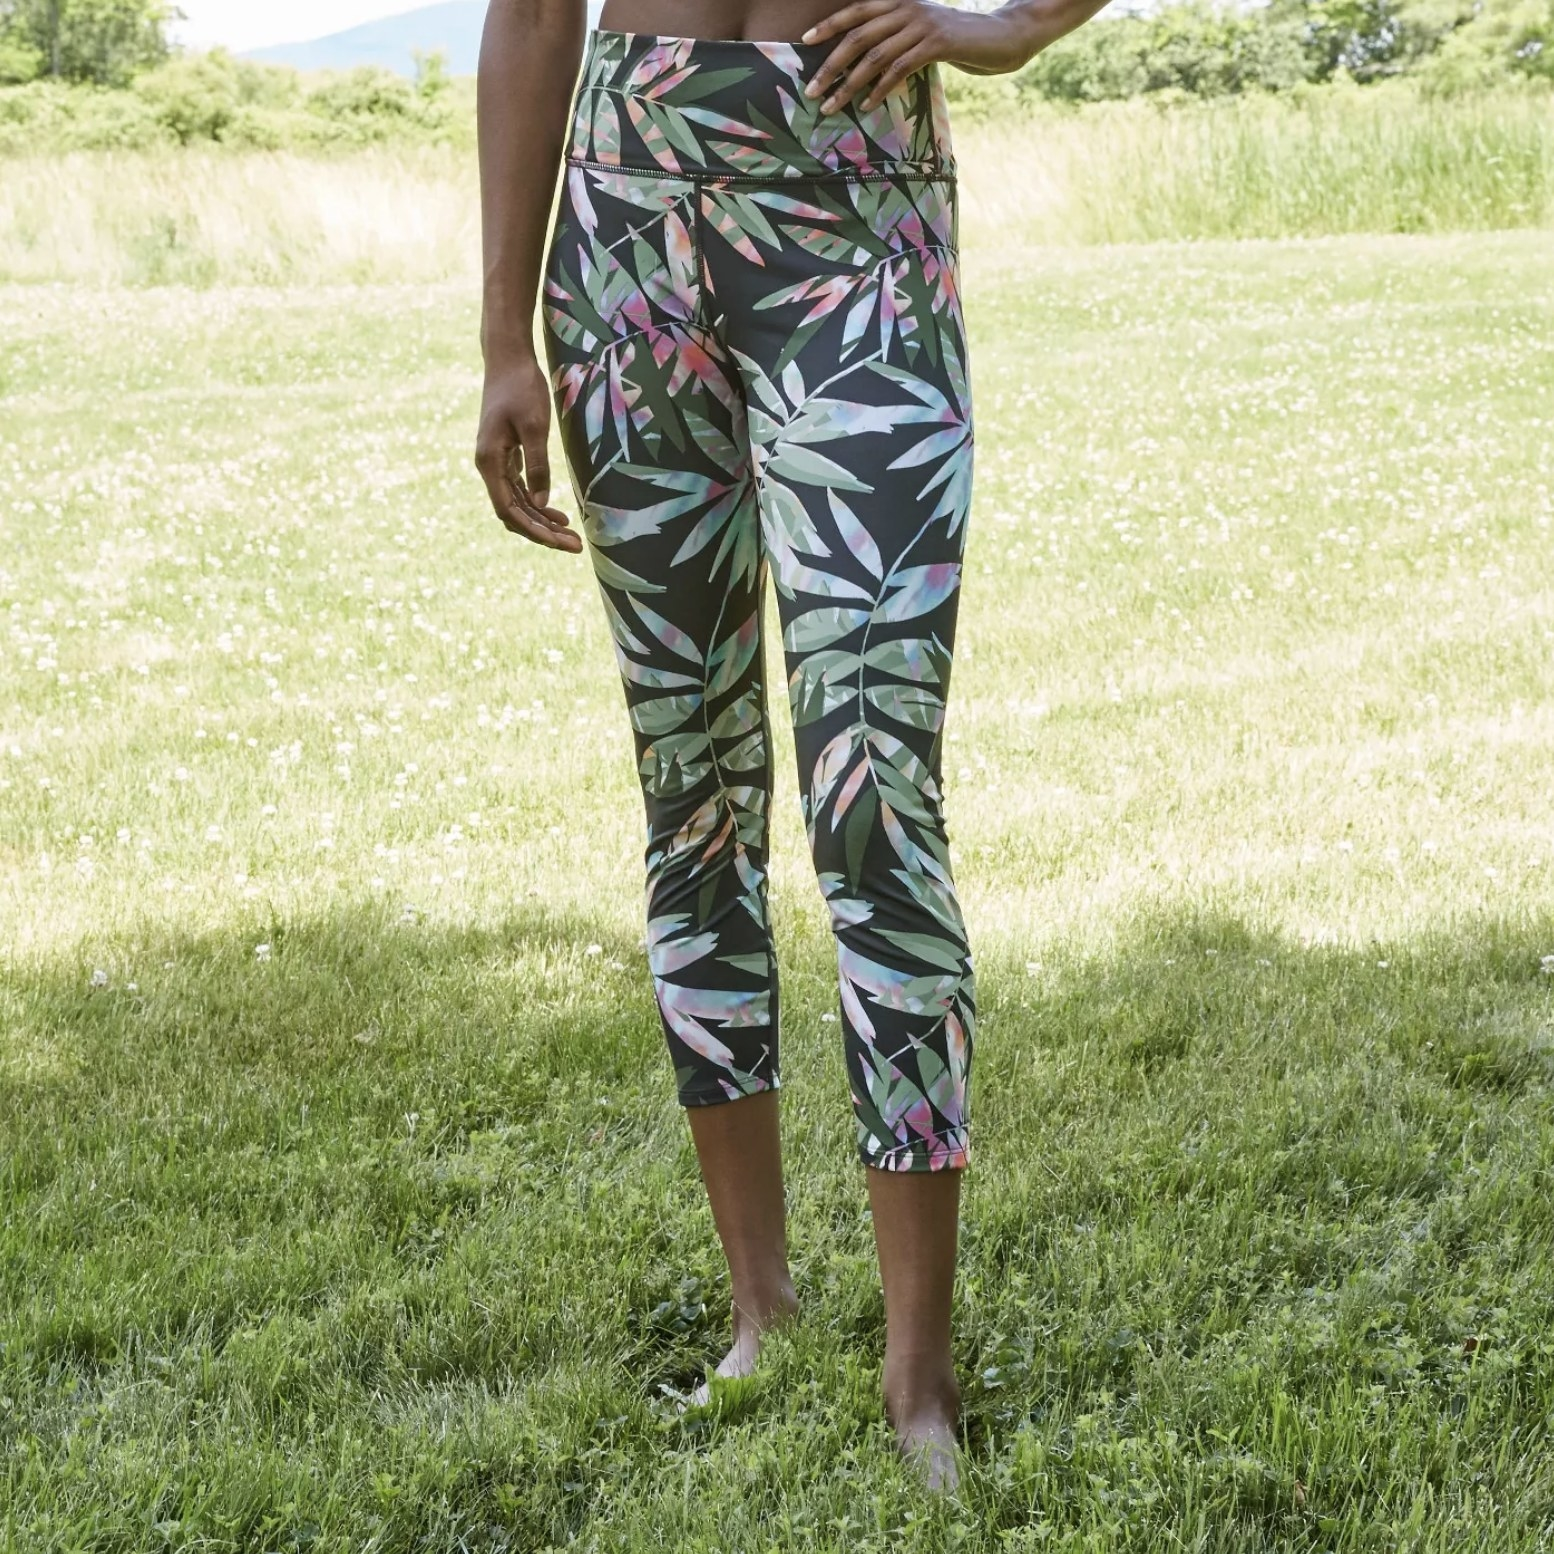 Model is wearing black leggings with a bold tropical print pattern